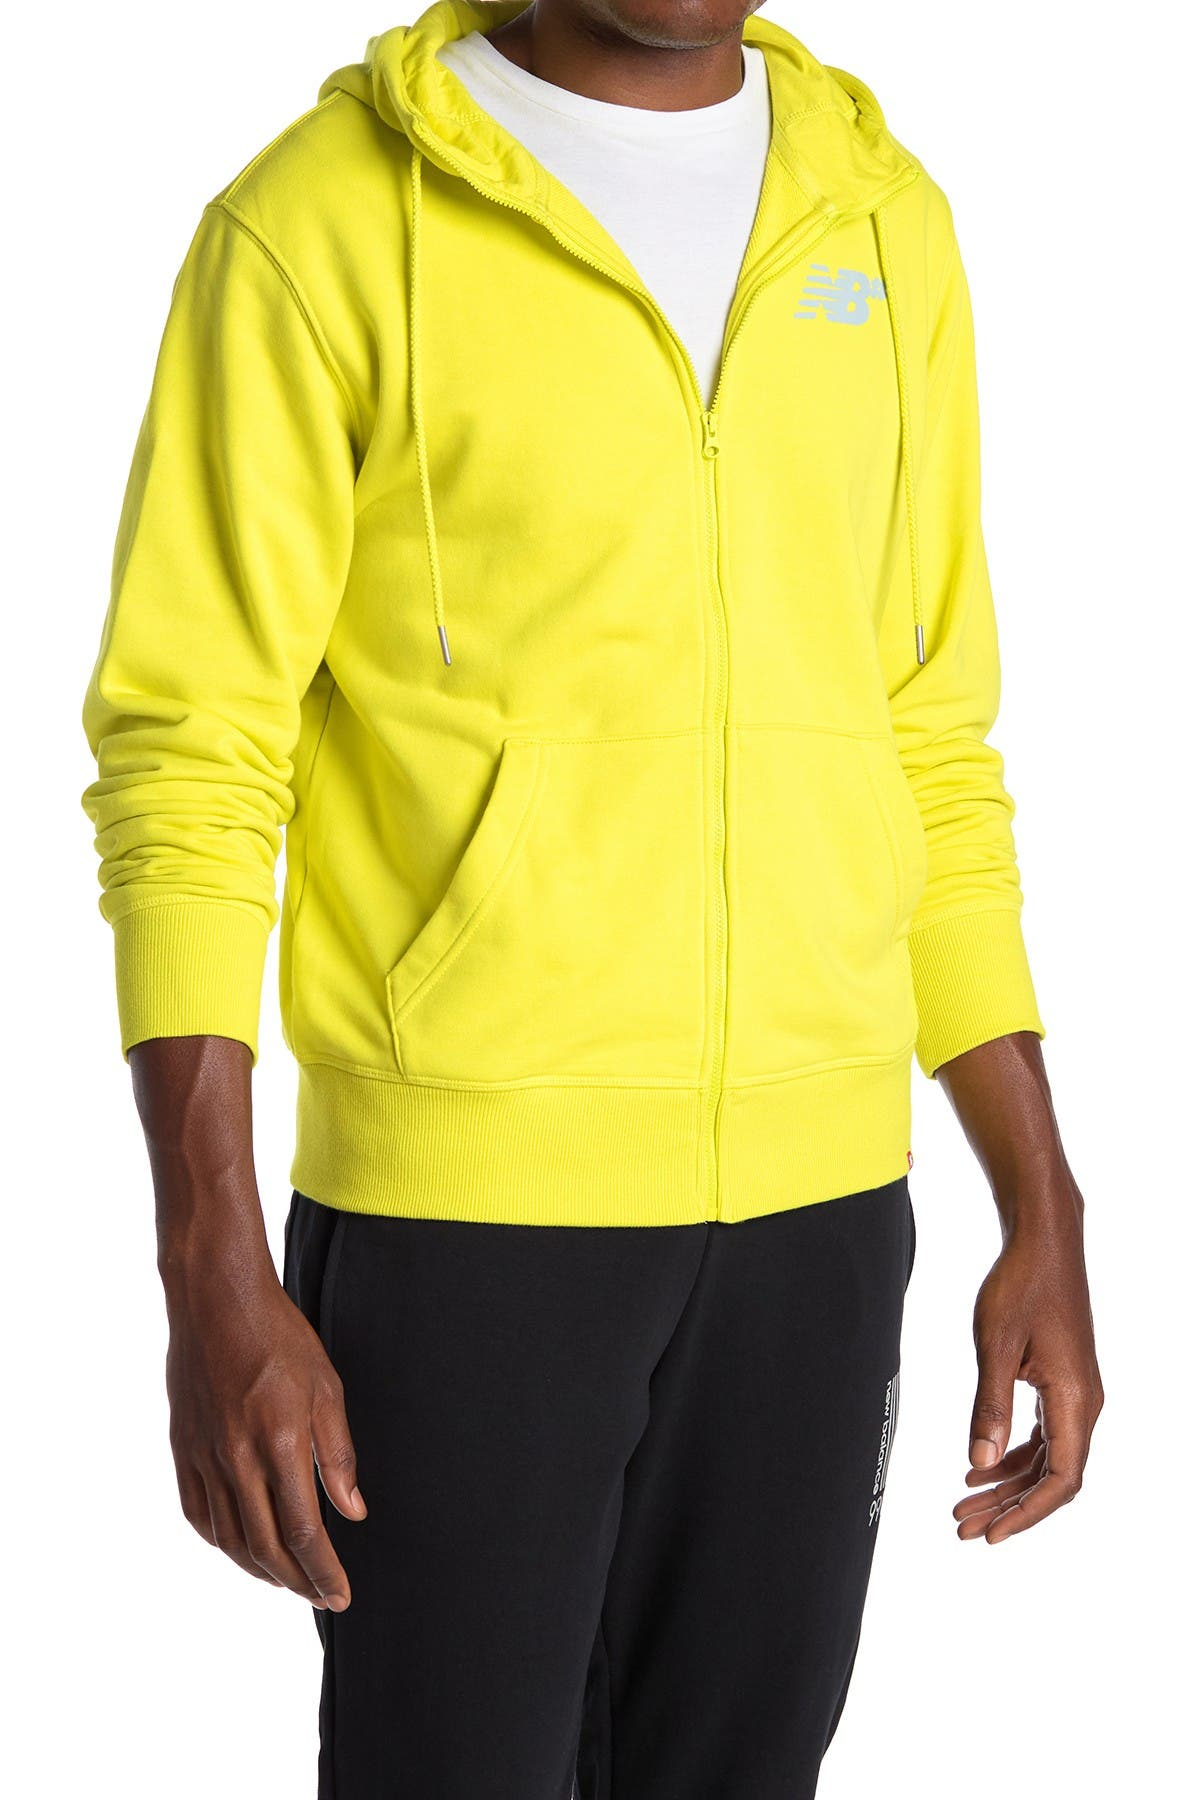 Image of New Balance Numeric Tradition Zip Hoodie